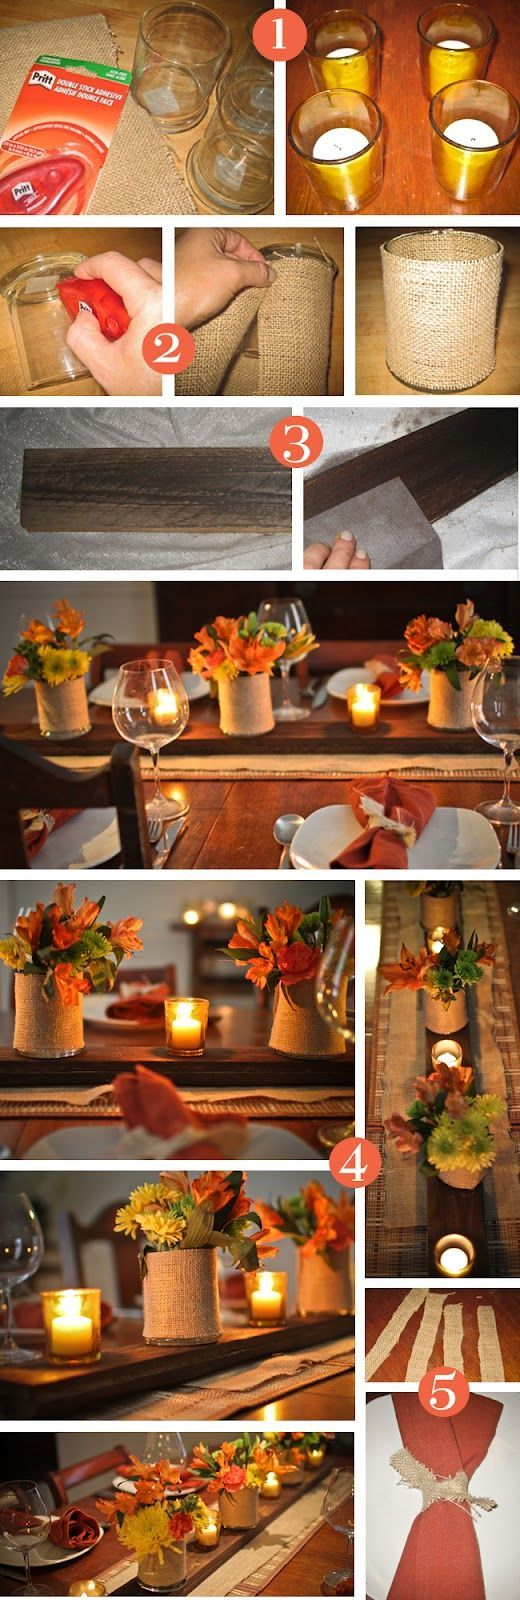 Easy Fall table decor idea using materials you already have on hand.: